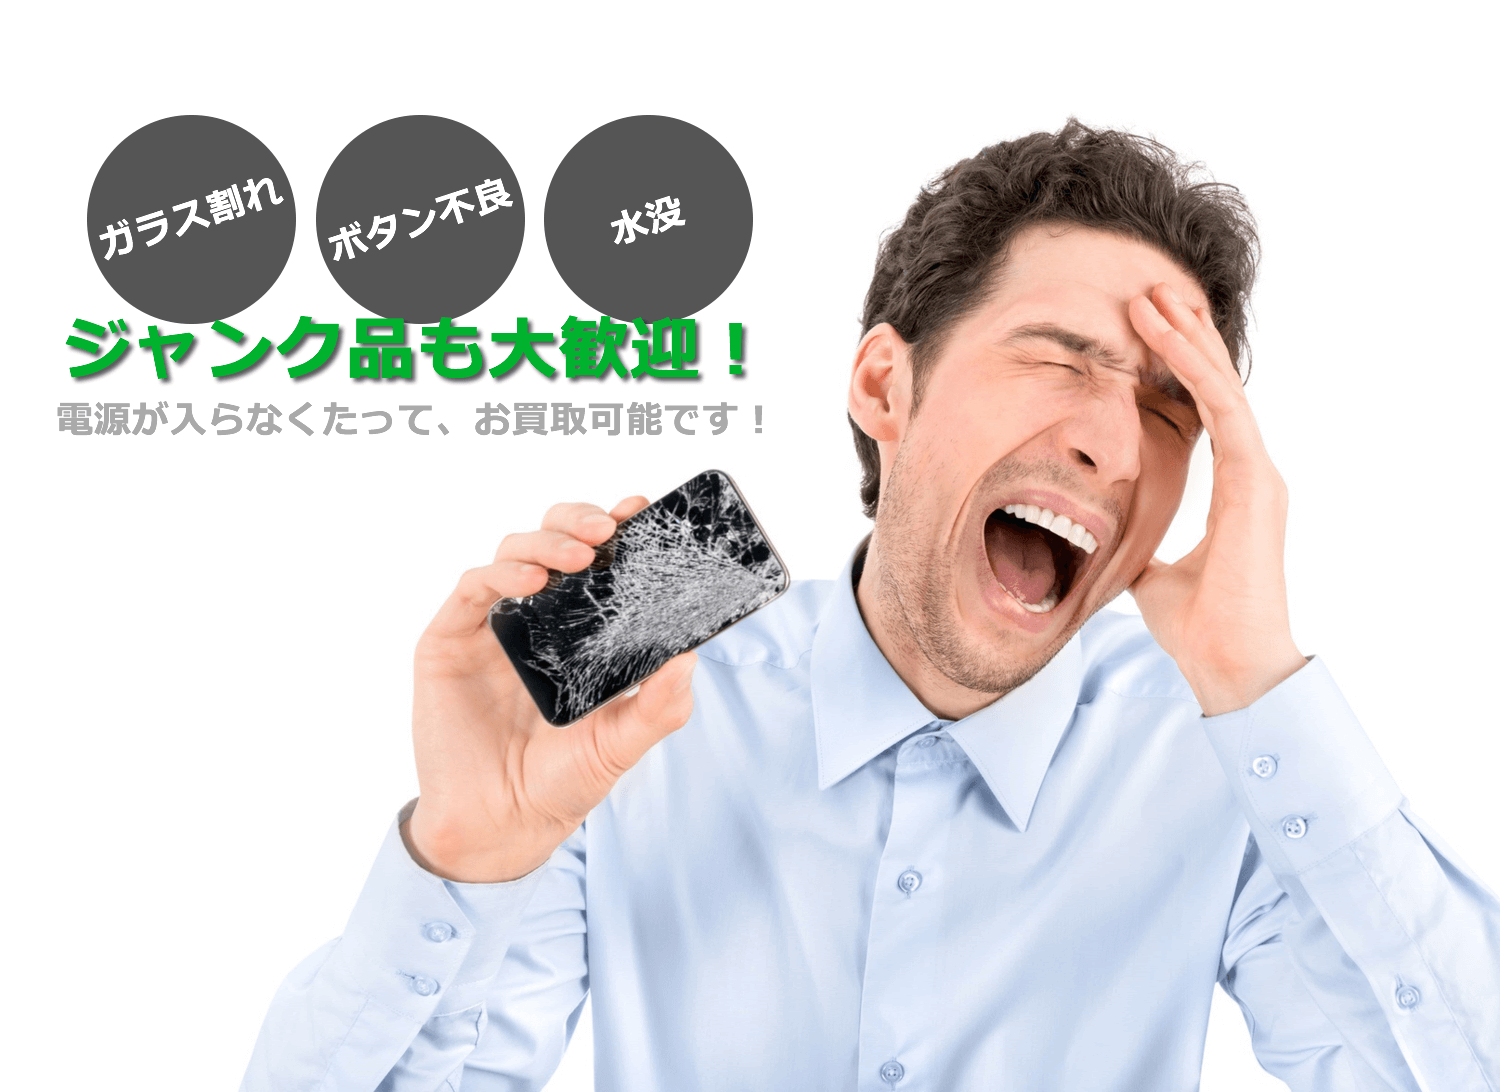 iPhoneジャンク≪故障≫買取価格